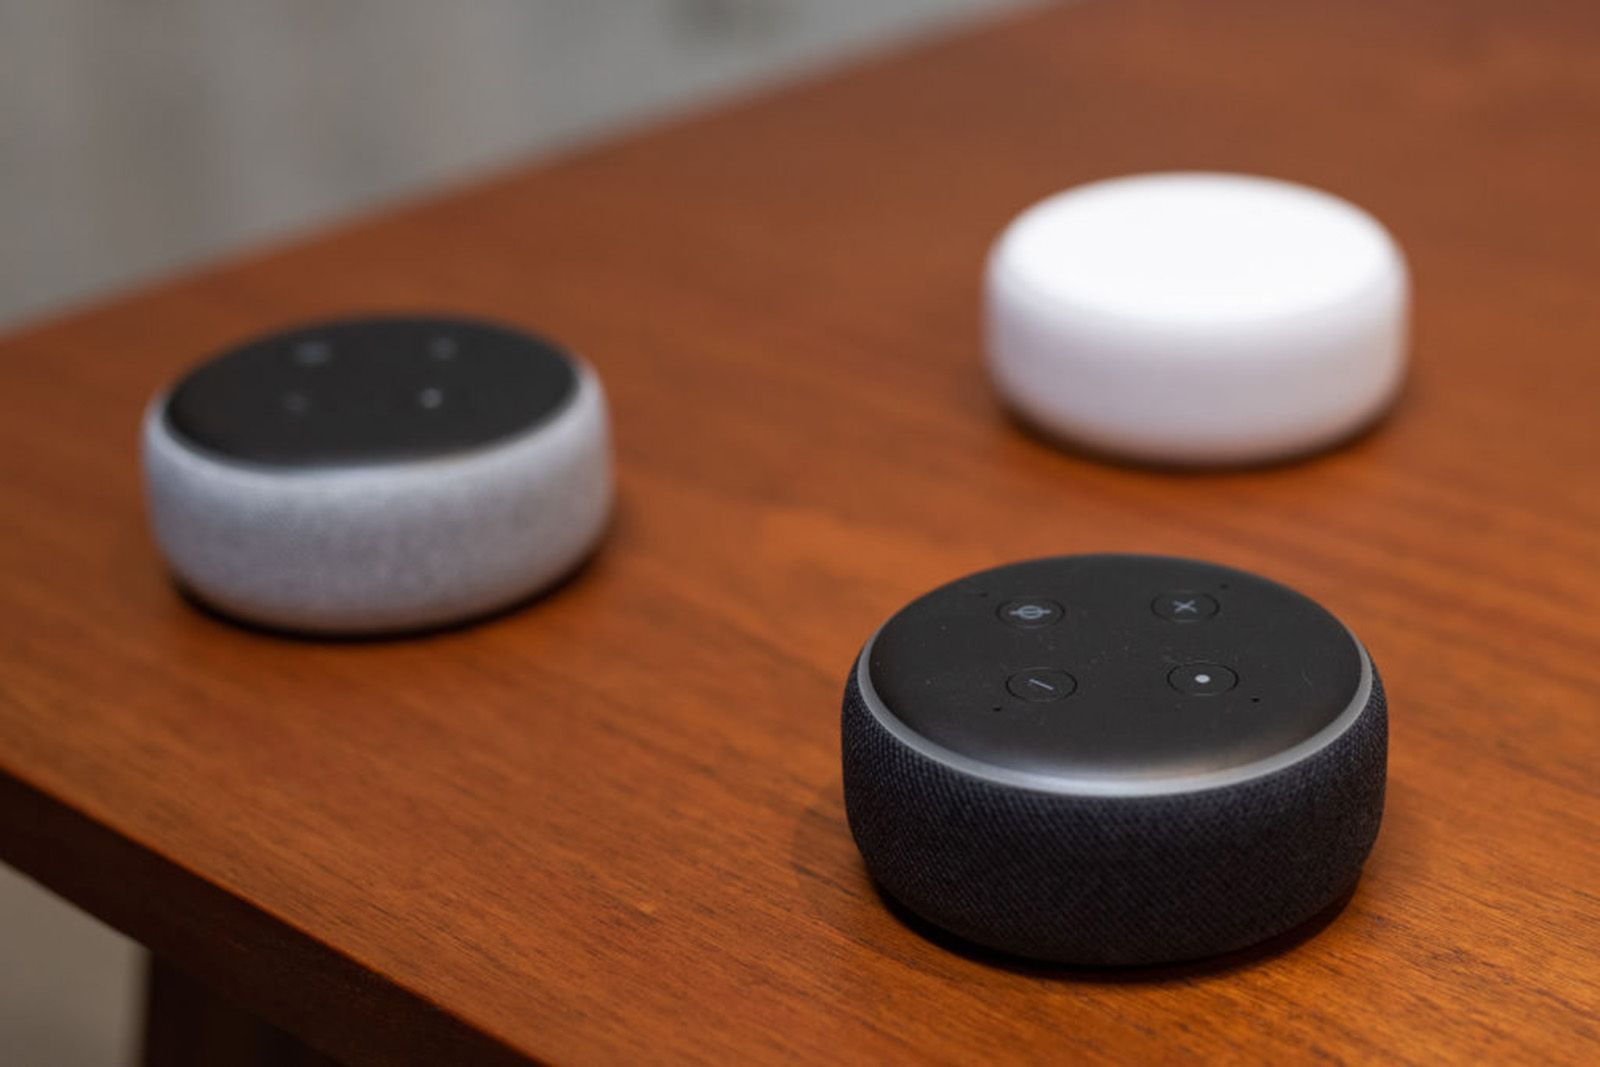 The updated Echo Dot, is displayed in Amazon's Day 1 building in Seattle on September 20, 2018. (GRANT HINDSLEY/AFP/Getty Images/TNS) *FOR USE WITH THIS STORY ONLY*